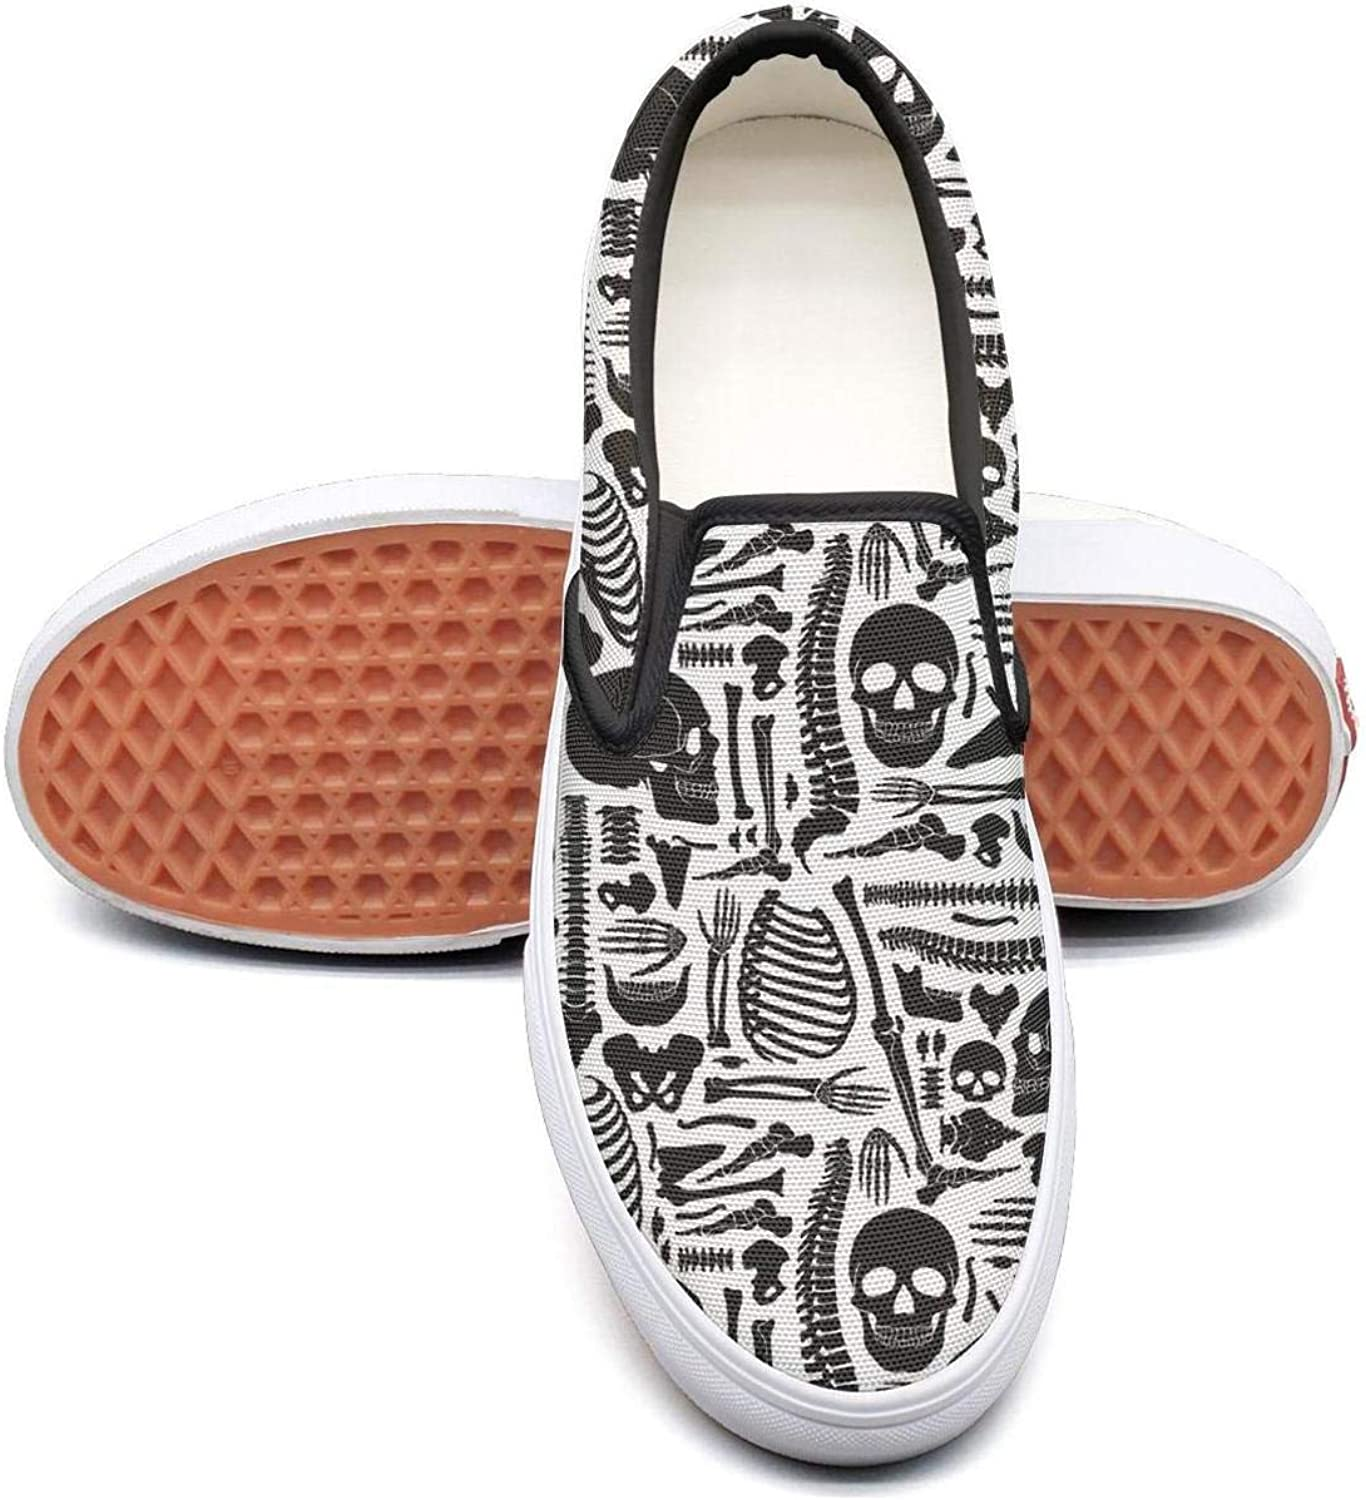 Black Mexican Candy Skull Art Designs Slip On Canvas Upper Loafers Canvas shoes for Women Fashion